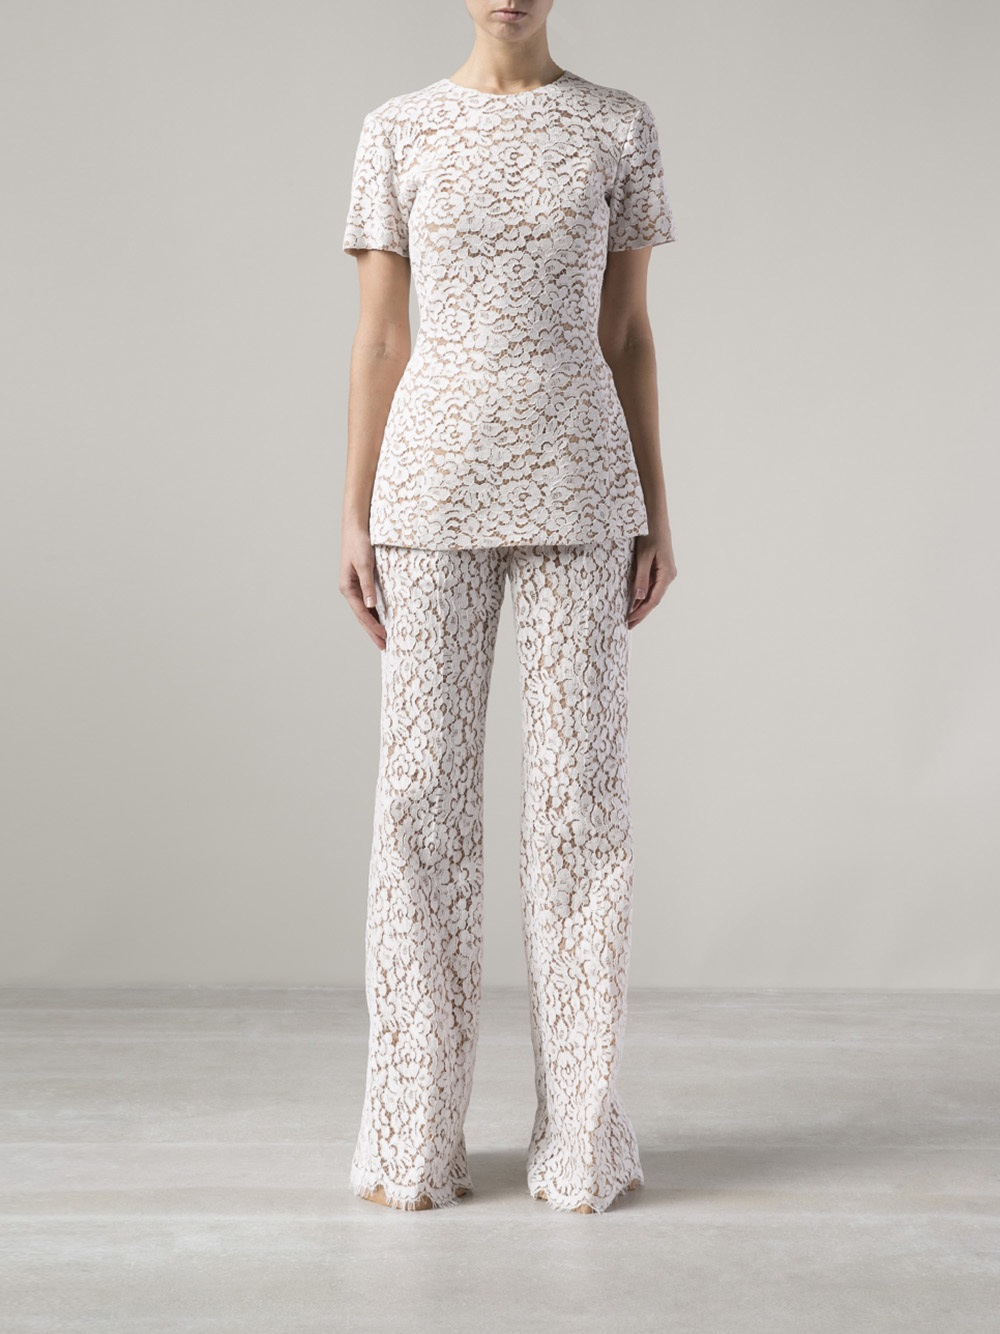 Lyst Michael Kors Floral Lace Trousers In White